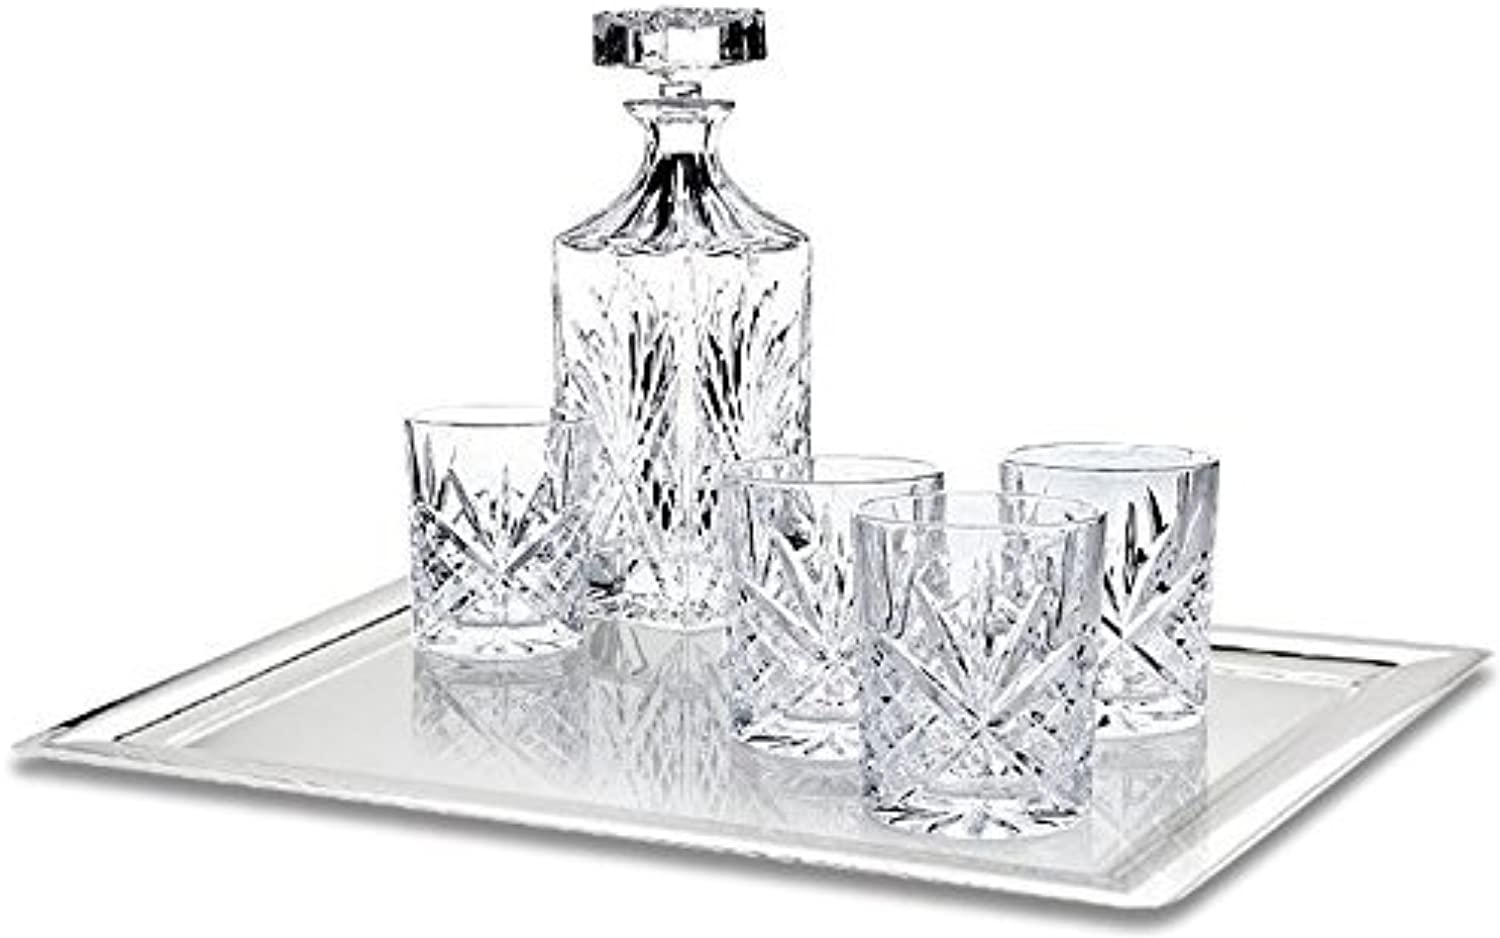 James Scott 6-Piece Crystal Whiskey Decanter Set - Lead Free Elegant Decanter with Beautiful Stopper and 5 Exquisite Old Fashioned Glasses   Packaged in an Exclusive Gift Box